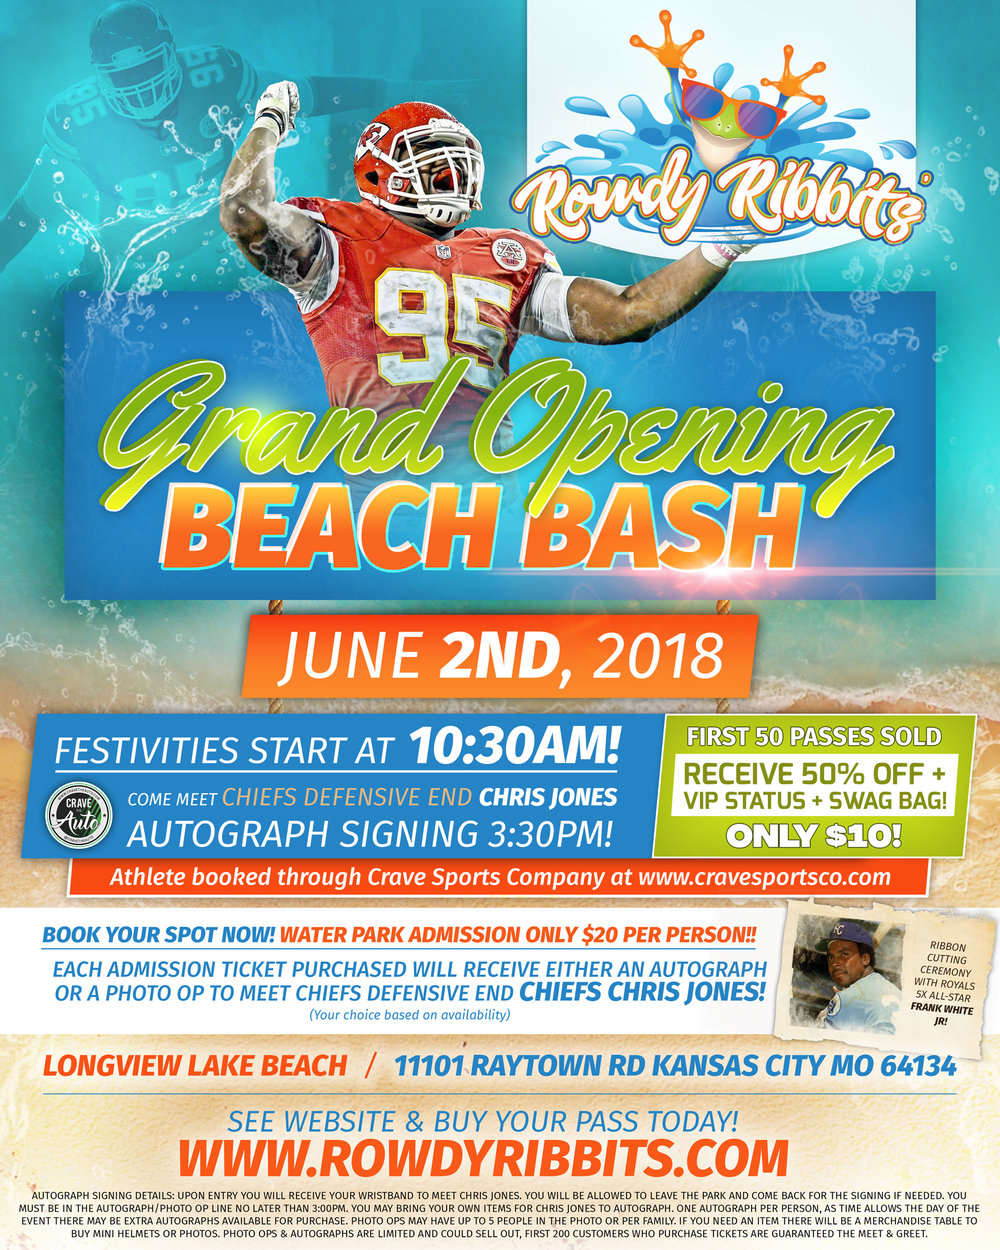 Chris Jones Autographs at Rowdy Ribbit's Grand Opening!! See details!